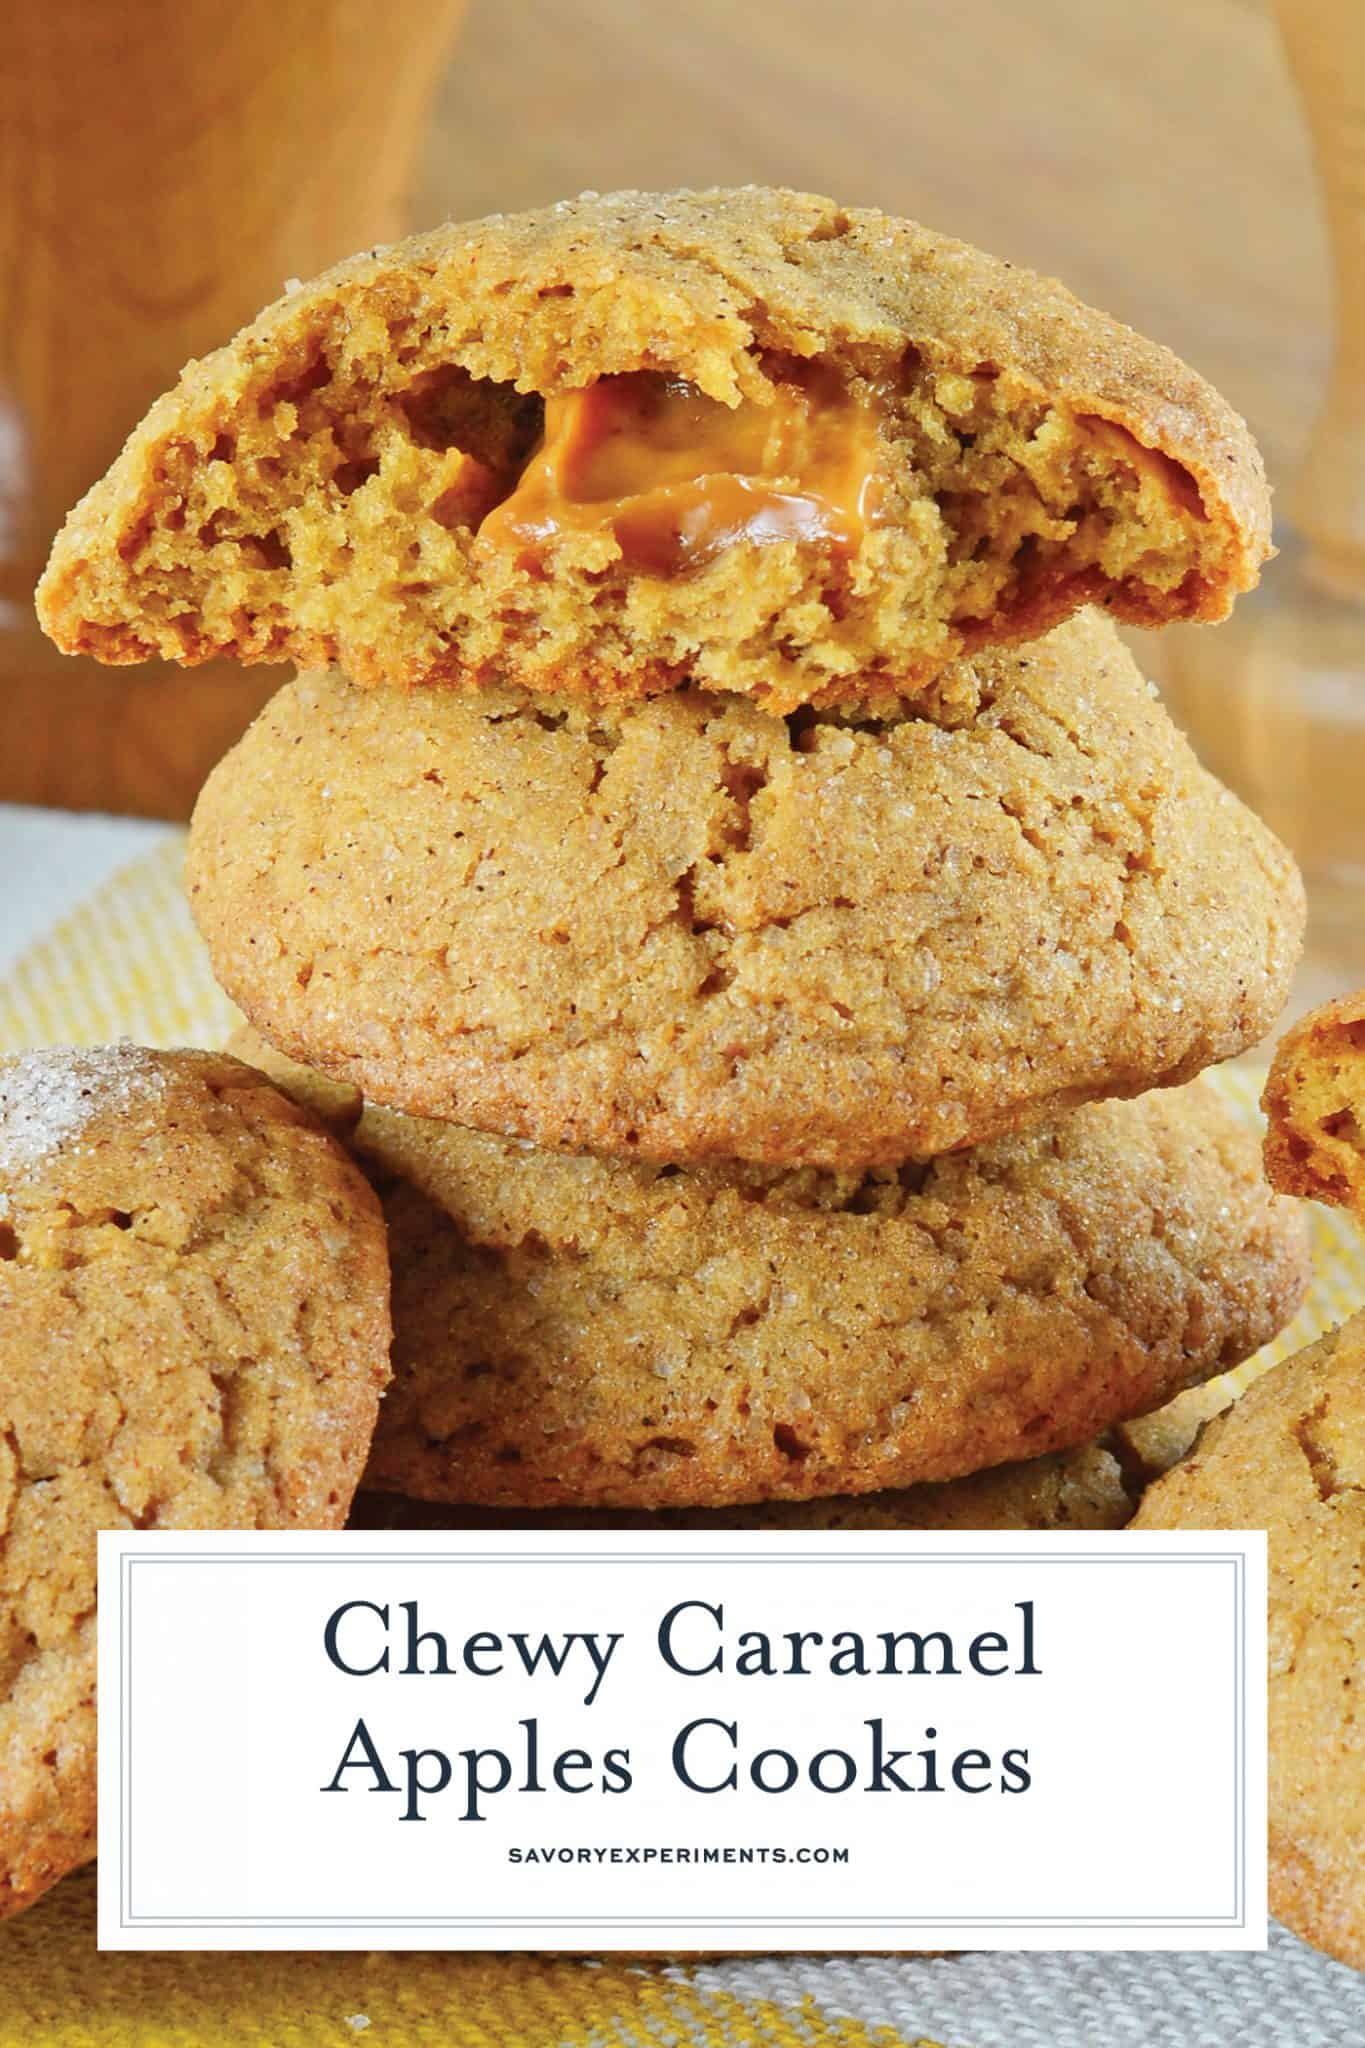 Caramel Apple Cookies are an easy, mess free way to enjoy a caramel apple! This fall cookie recipe is apple spiced cookie dough stuffed with gooey caramel! #applecookies #caramelapple #fallcookierecipe www.savoryexperiments.com